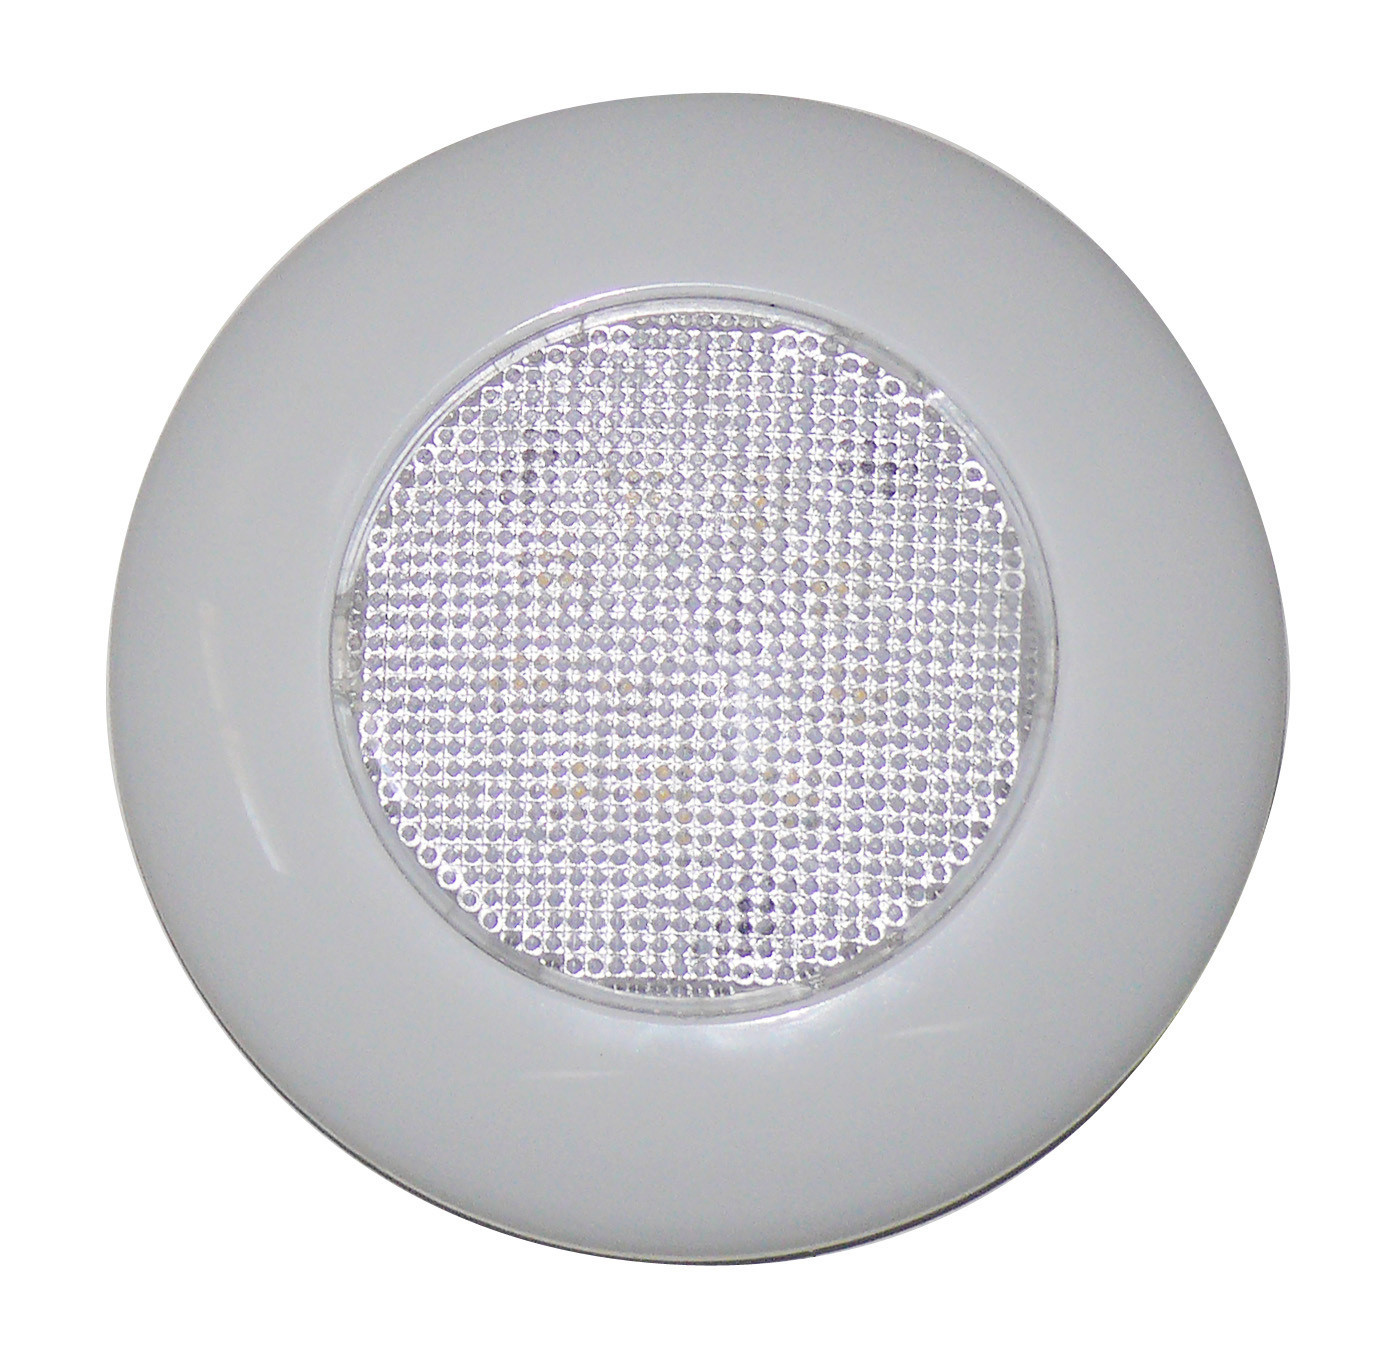 9 Diode Cost Effective LED Round Light - No Switch